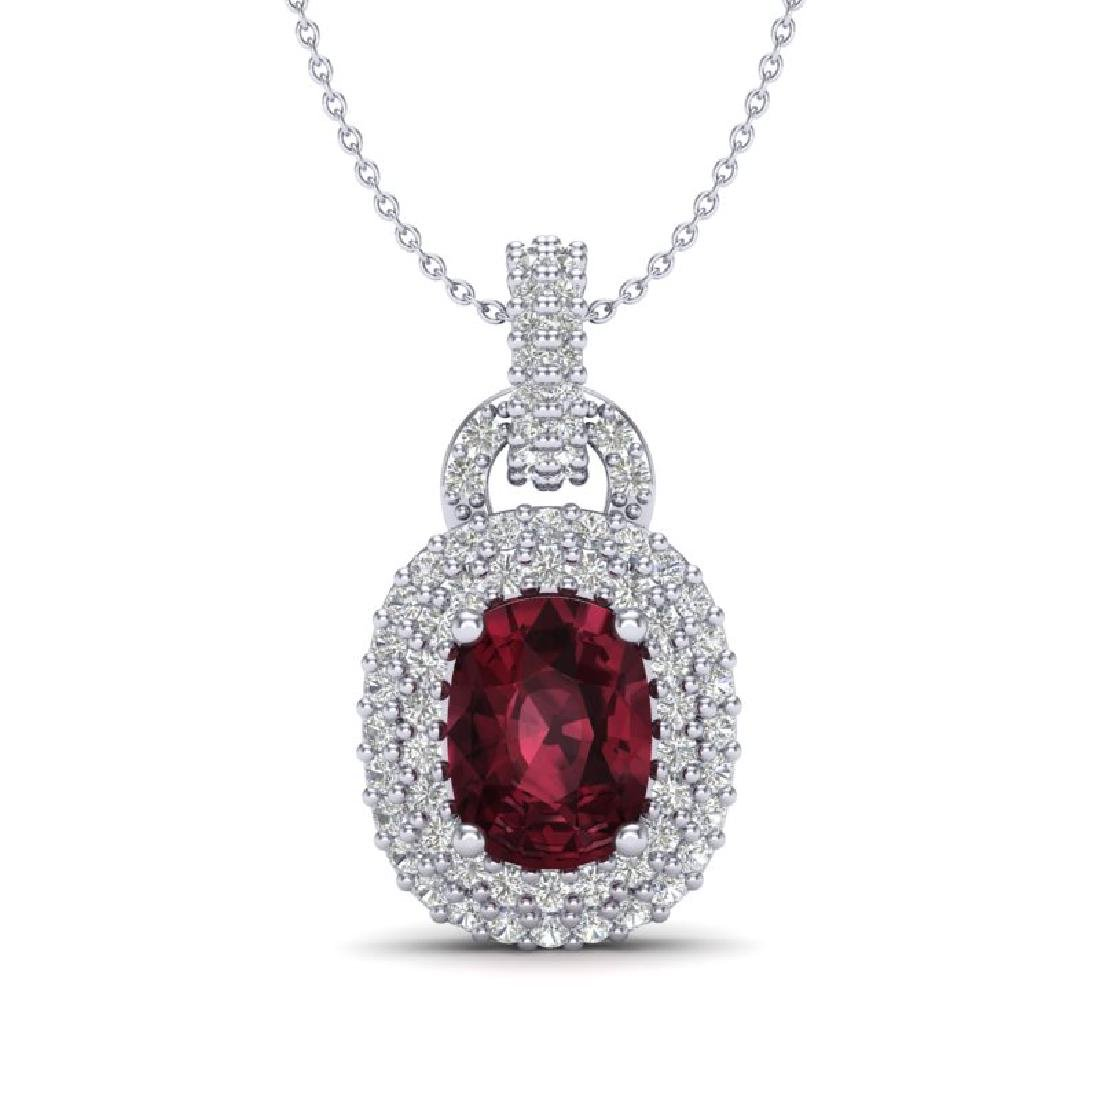 2.50 CTW Garnet And Micro Pave VS/SI Diamond Necklace